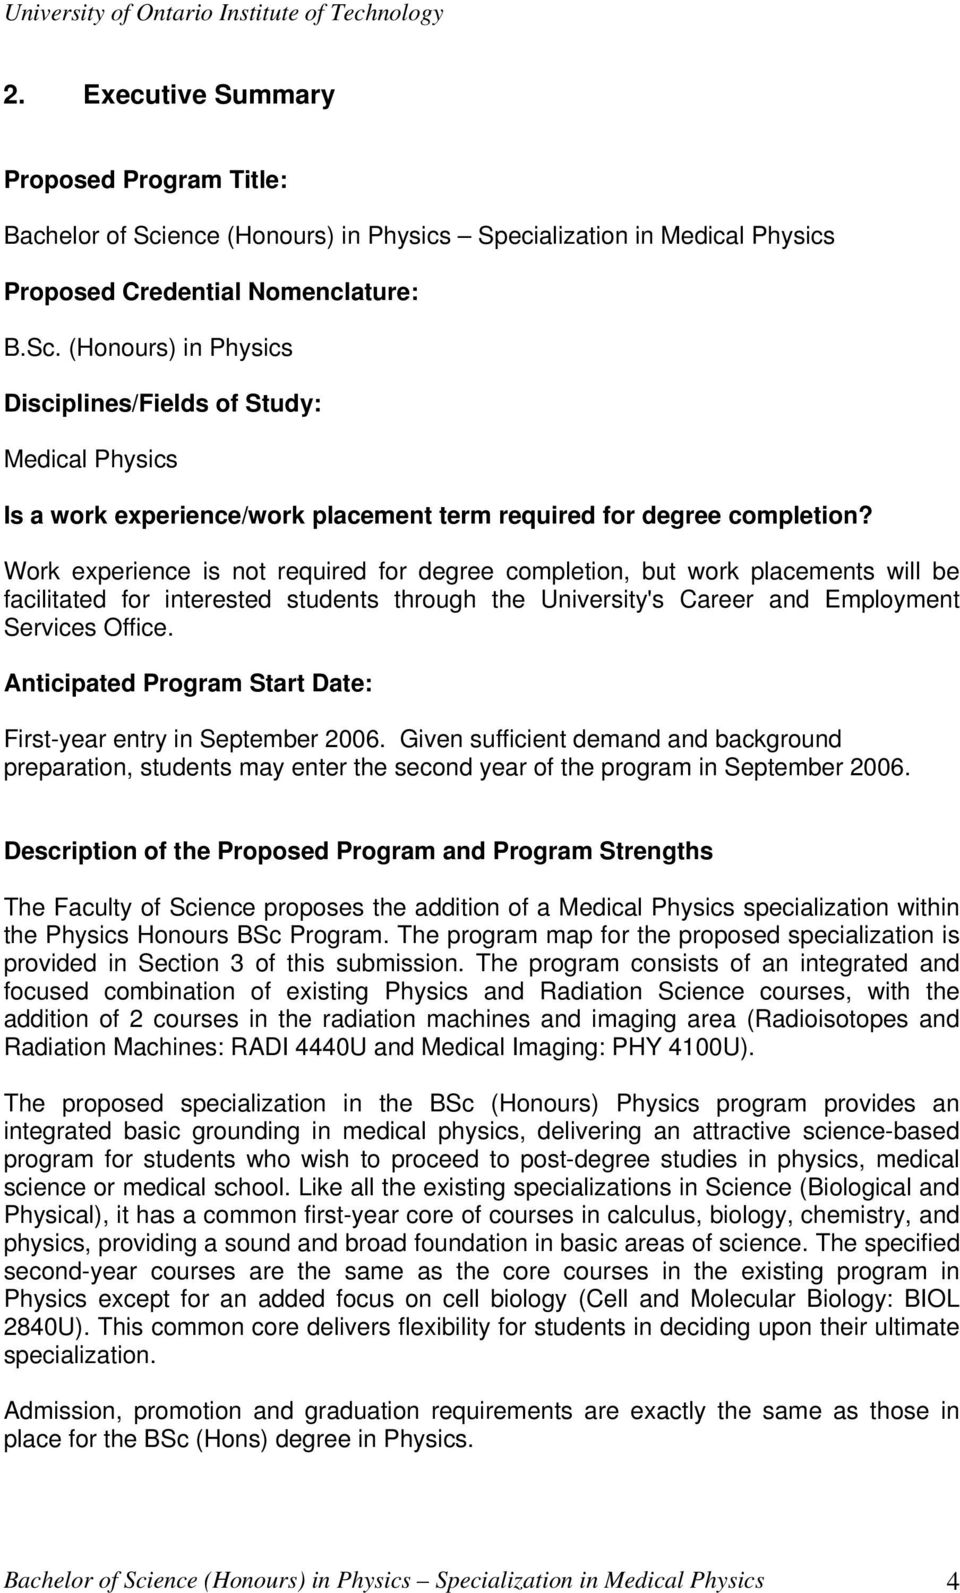 Bachelor of Science in Physics (Honours) with specialization